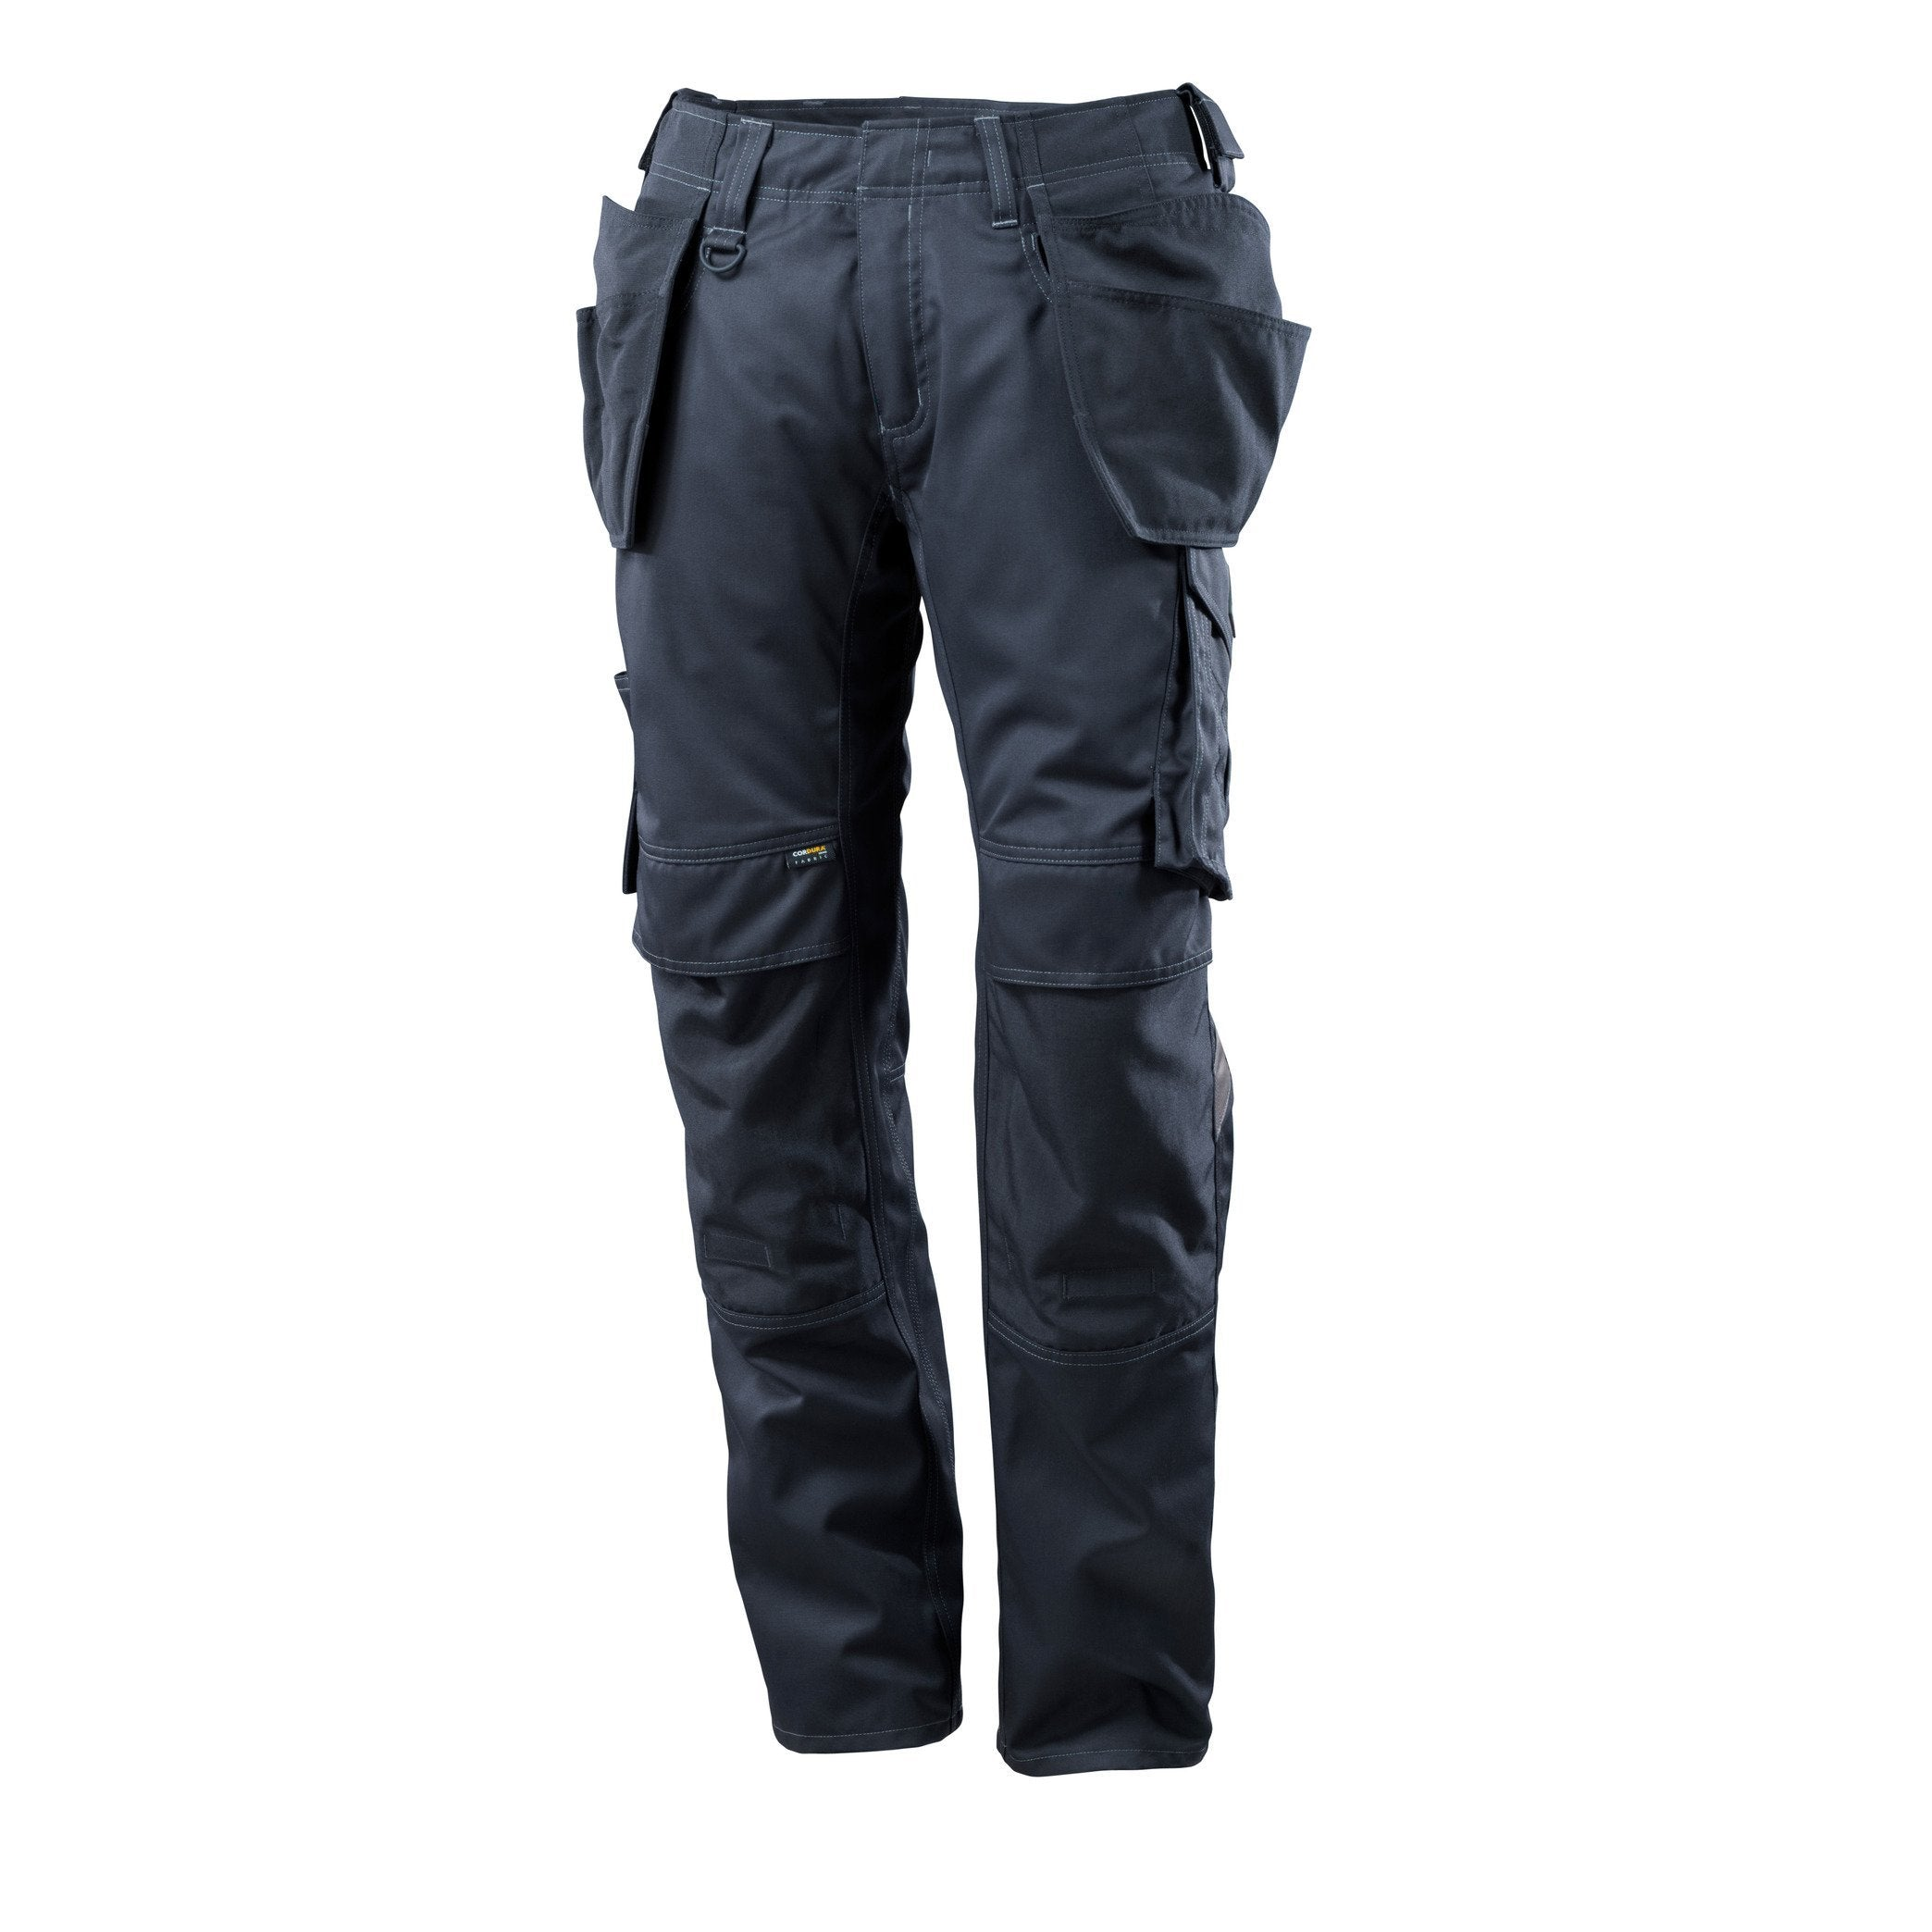 Mascot Kassel Unique Trousers With Kneepad Pockets And Holster Pockets